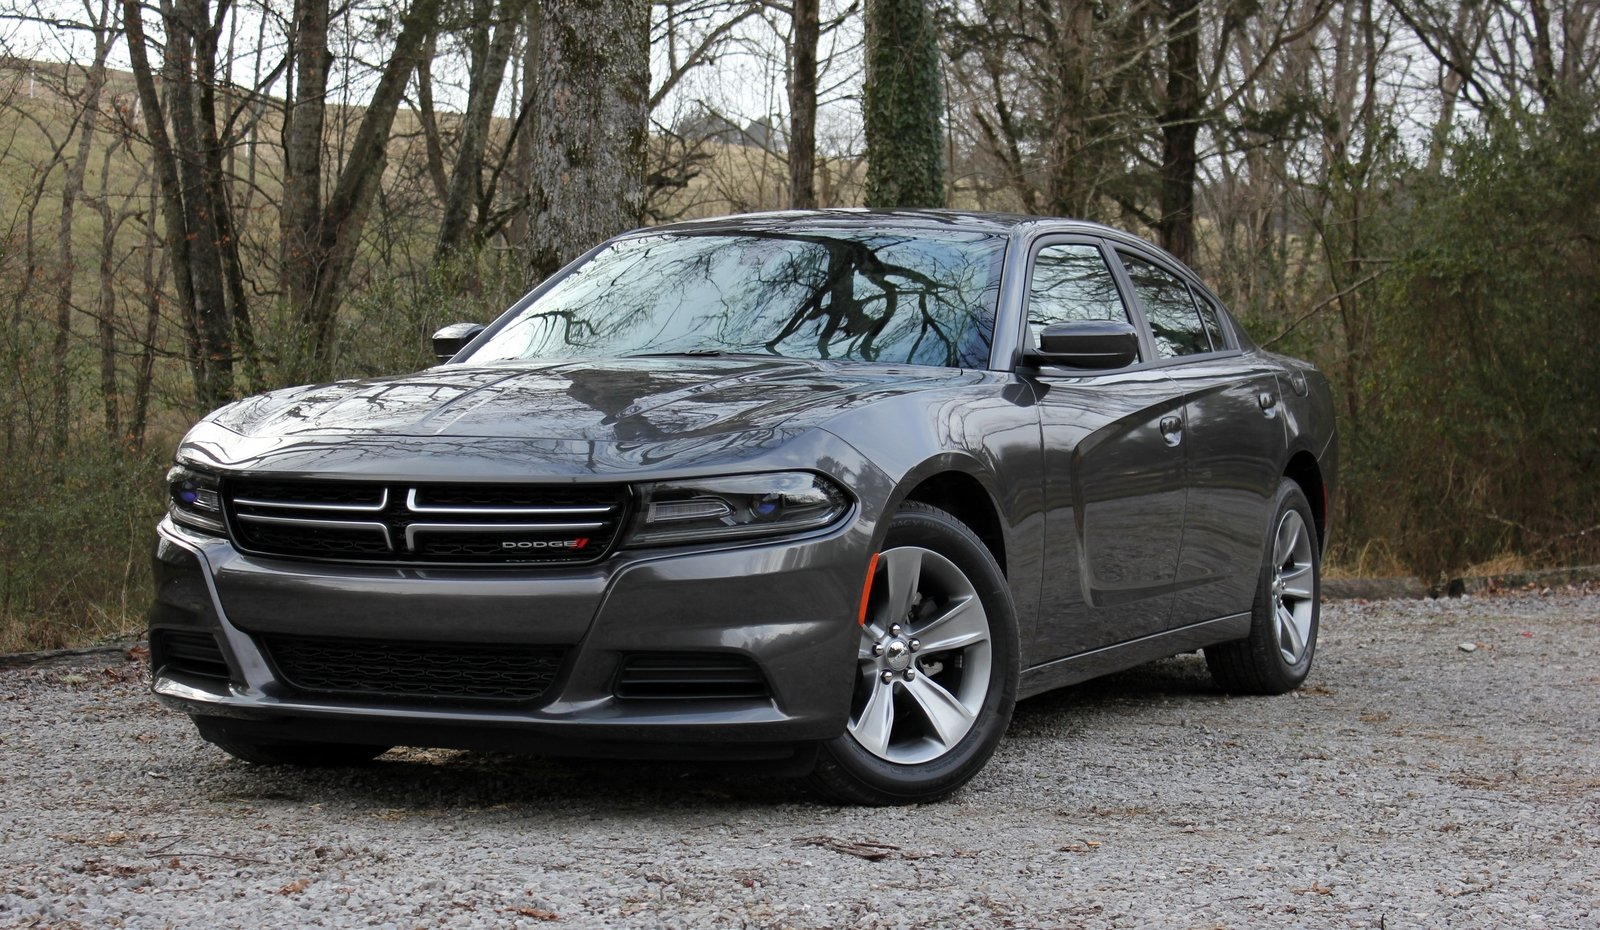 2015 dodge charger driven picture 614450 car review top speed. Black Bedroom Furniture Sets. Home Design Ideas